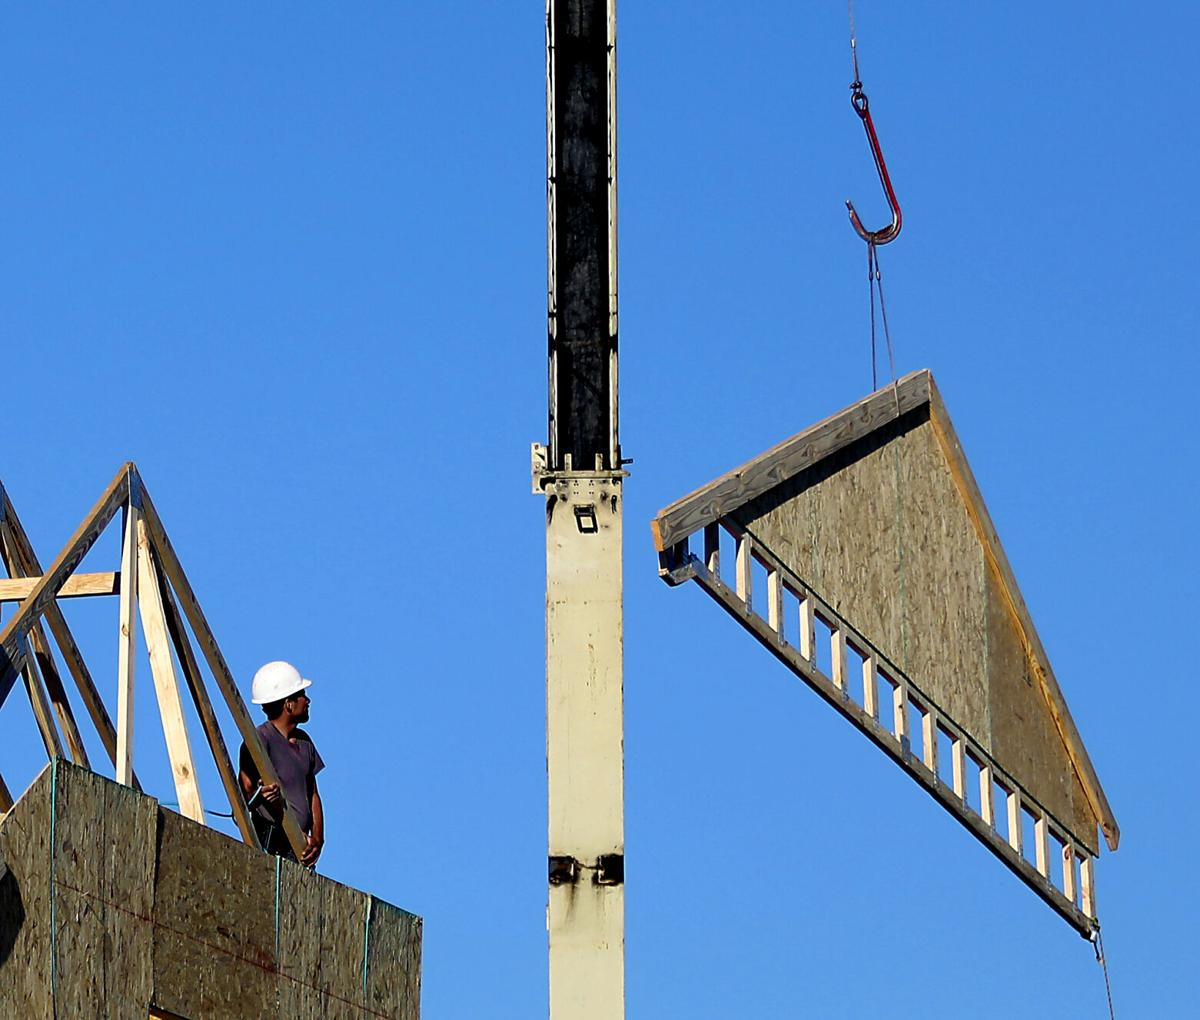 Beach building boom: Why COVID-19 has not slowed home construction on the Grand Strand